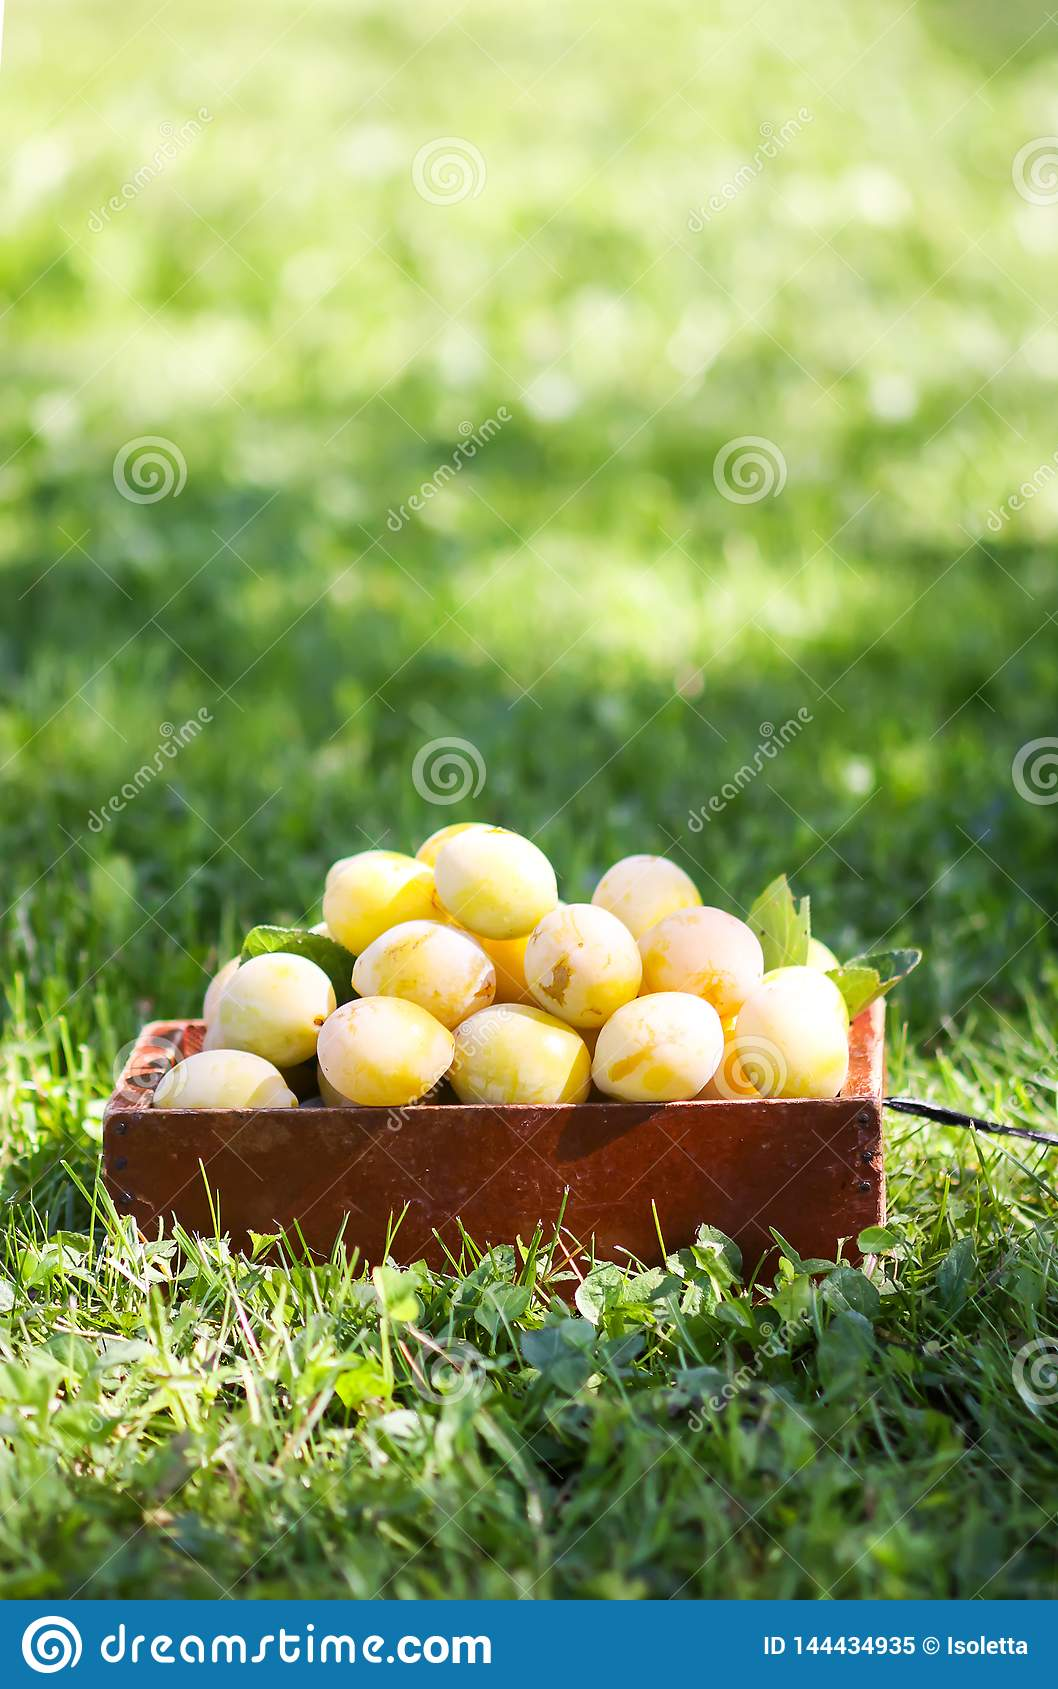 Fresh yellow plums. Ripe fruits in a wooden box on green summer grass in a garden